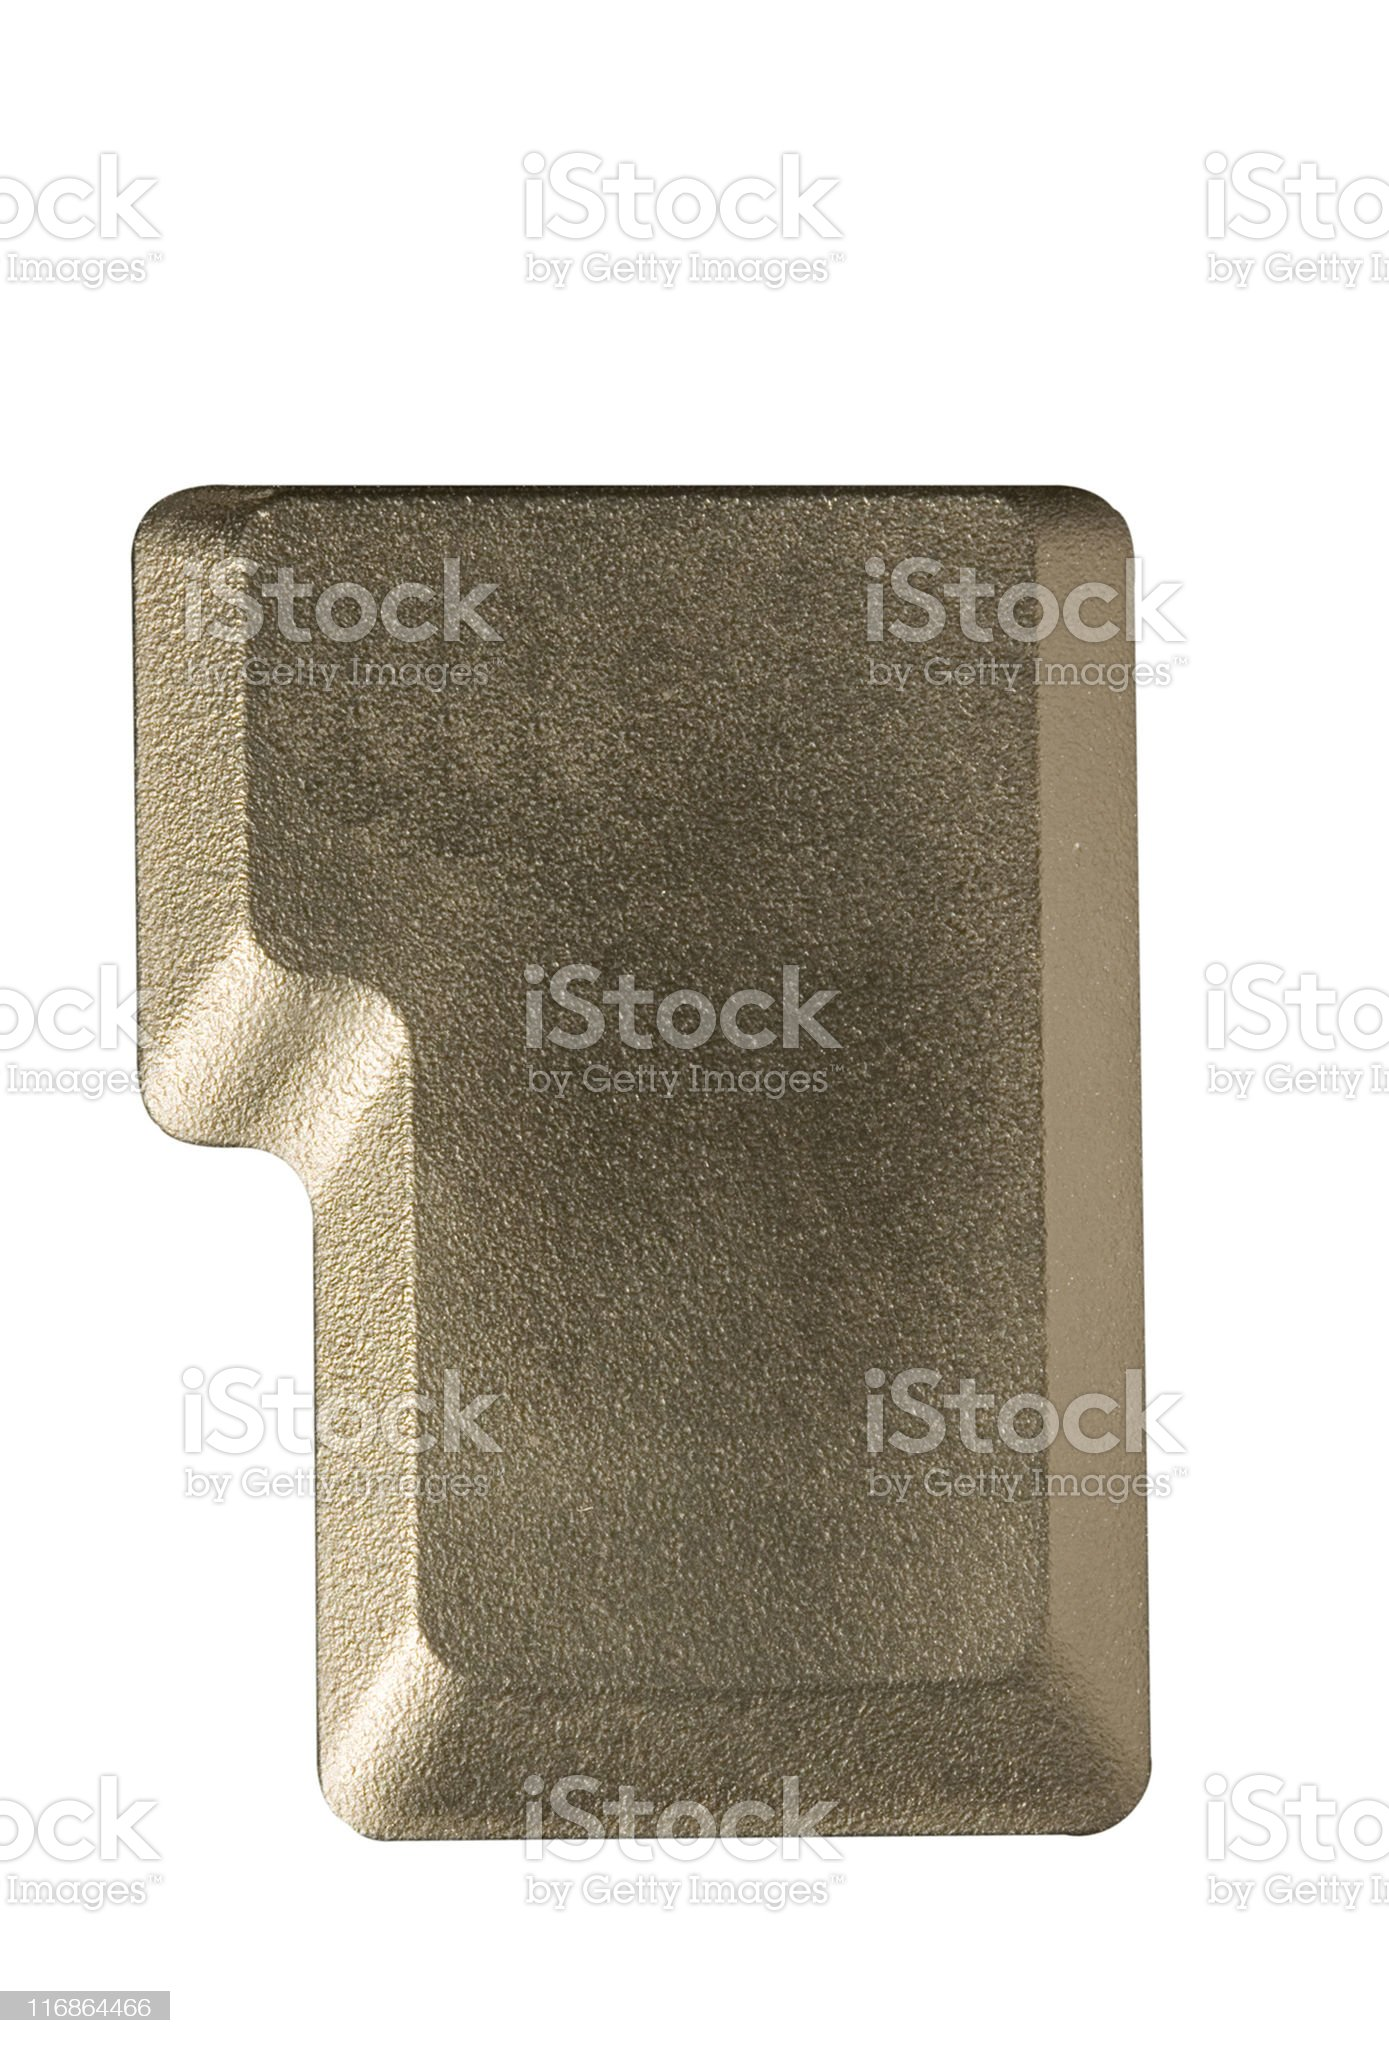 computer key in a keyboard with letter, number and symbols royalty-free stock photo